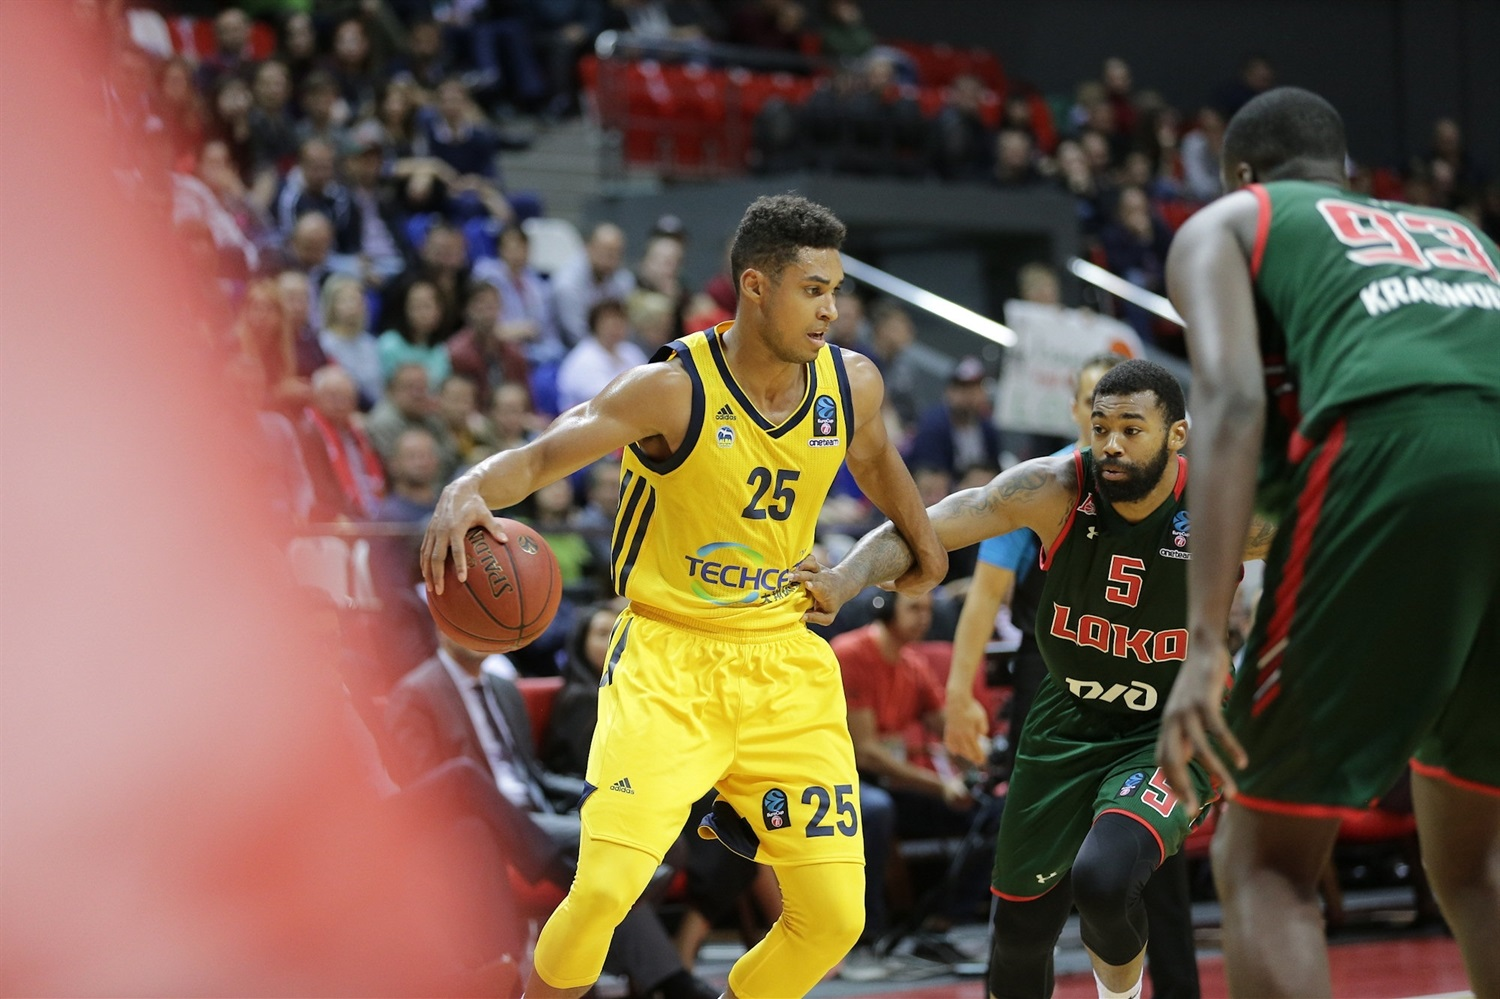 Kenneth Ogbe - ALBA Berlin (photo Lokomotiv) - EC18